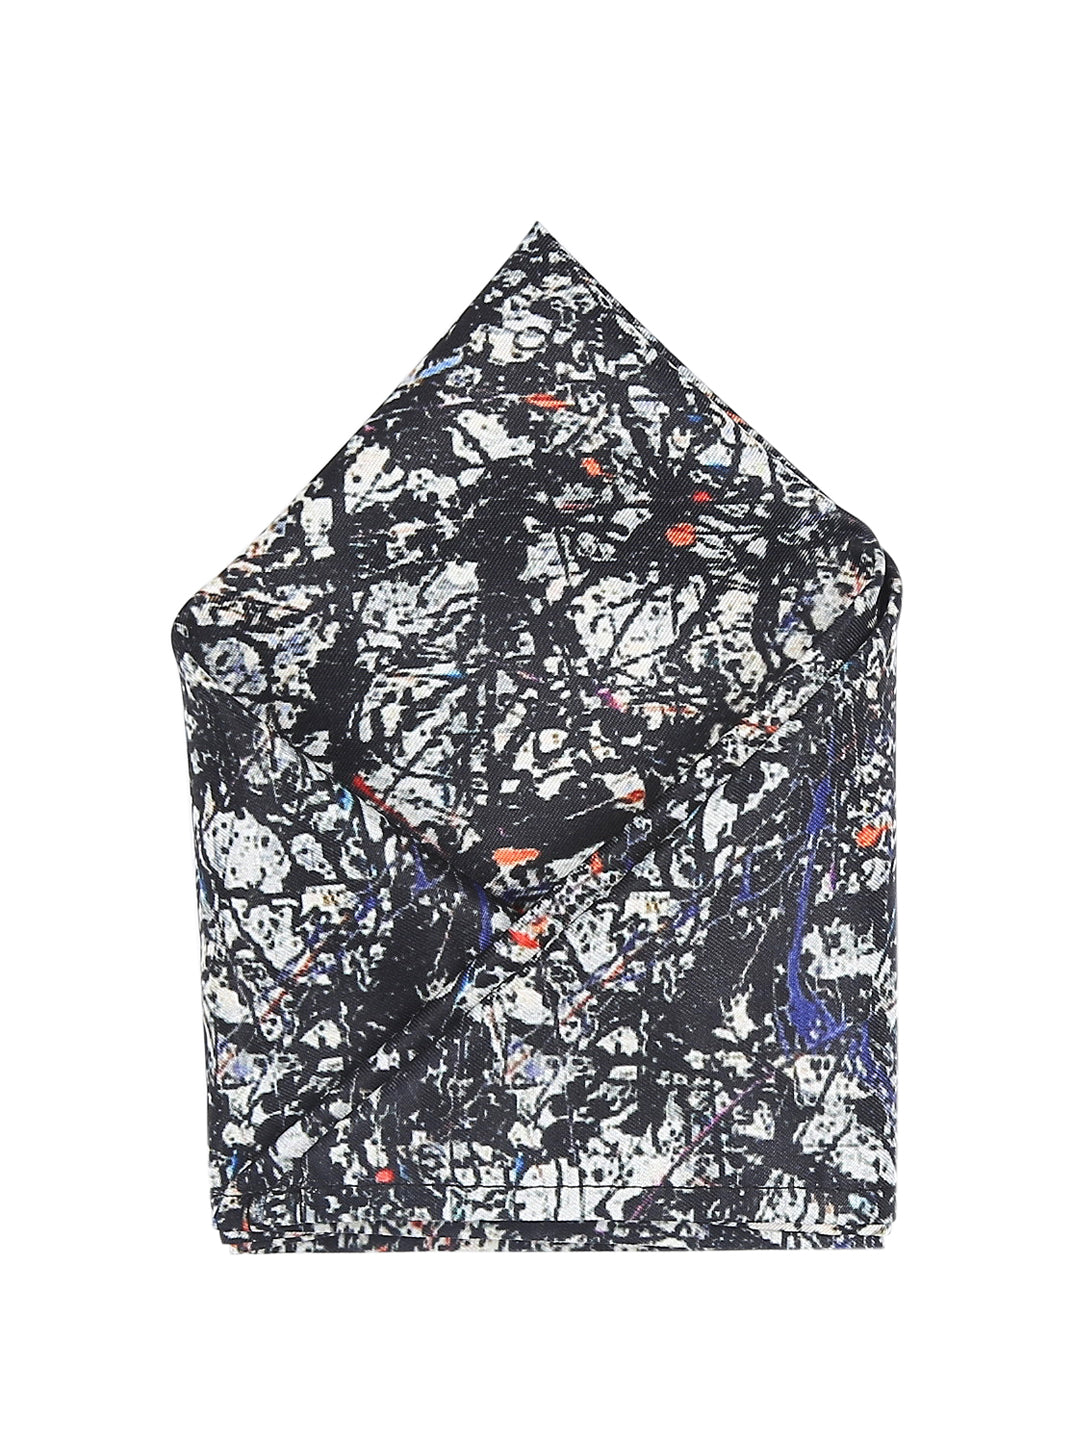 Zido Pocket Square for Men PSQ209